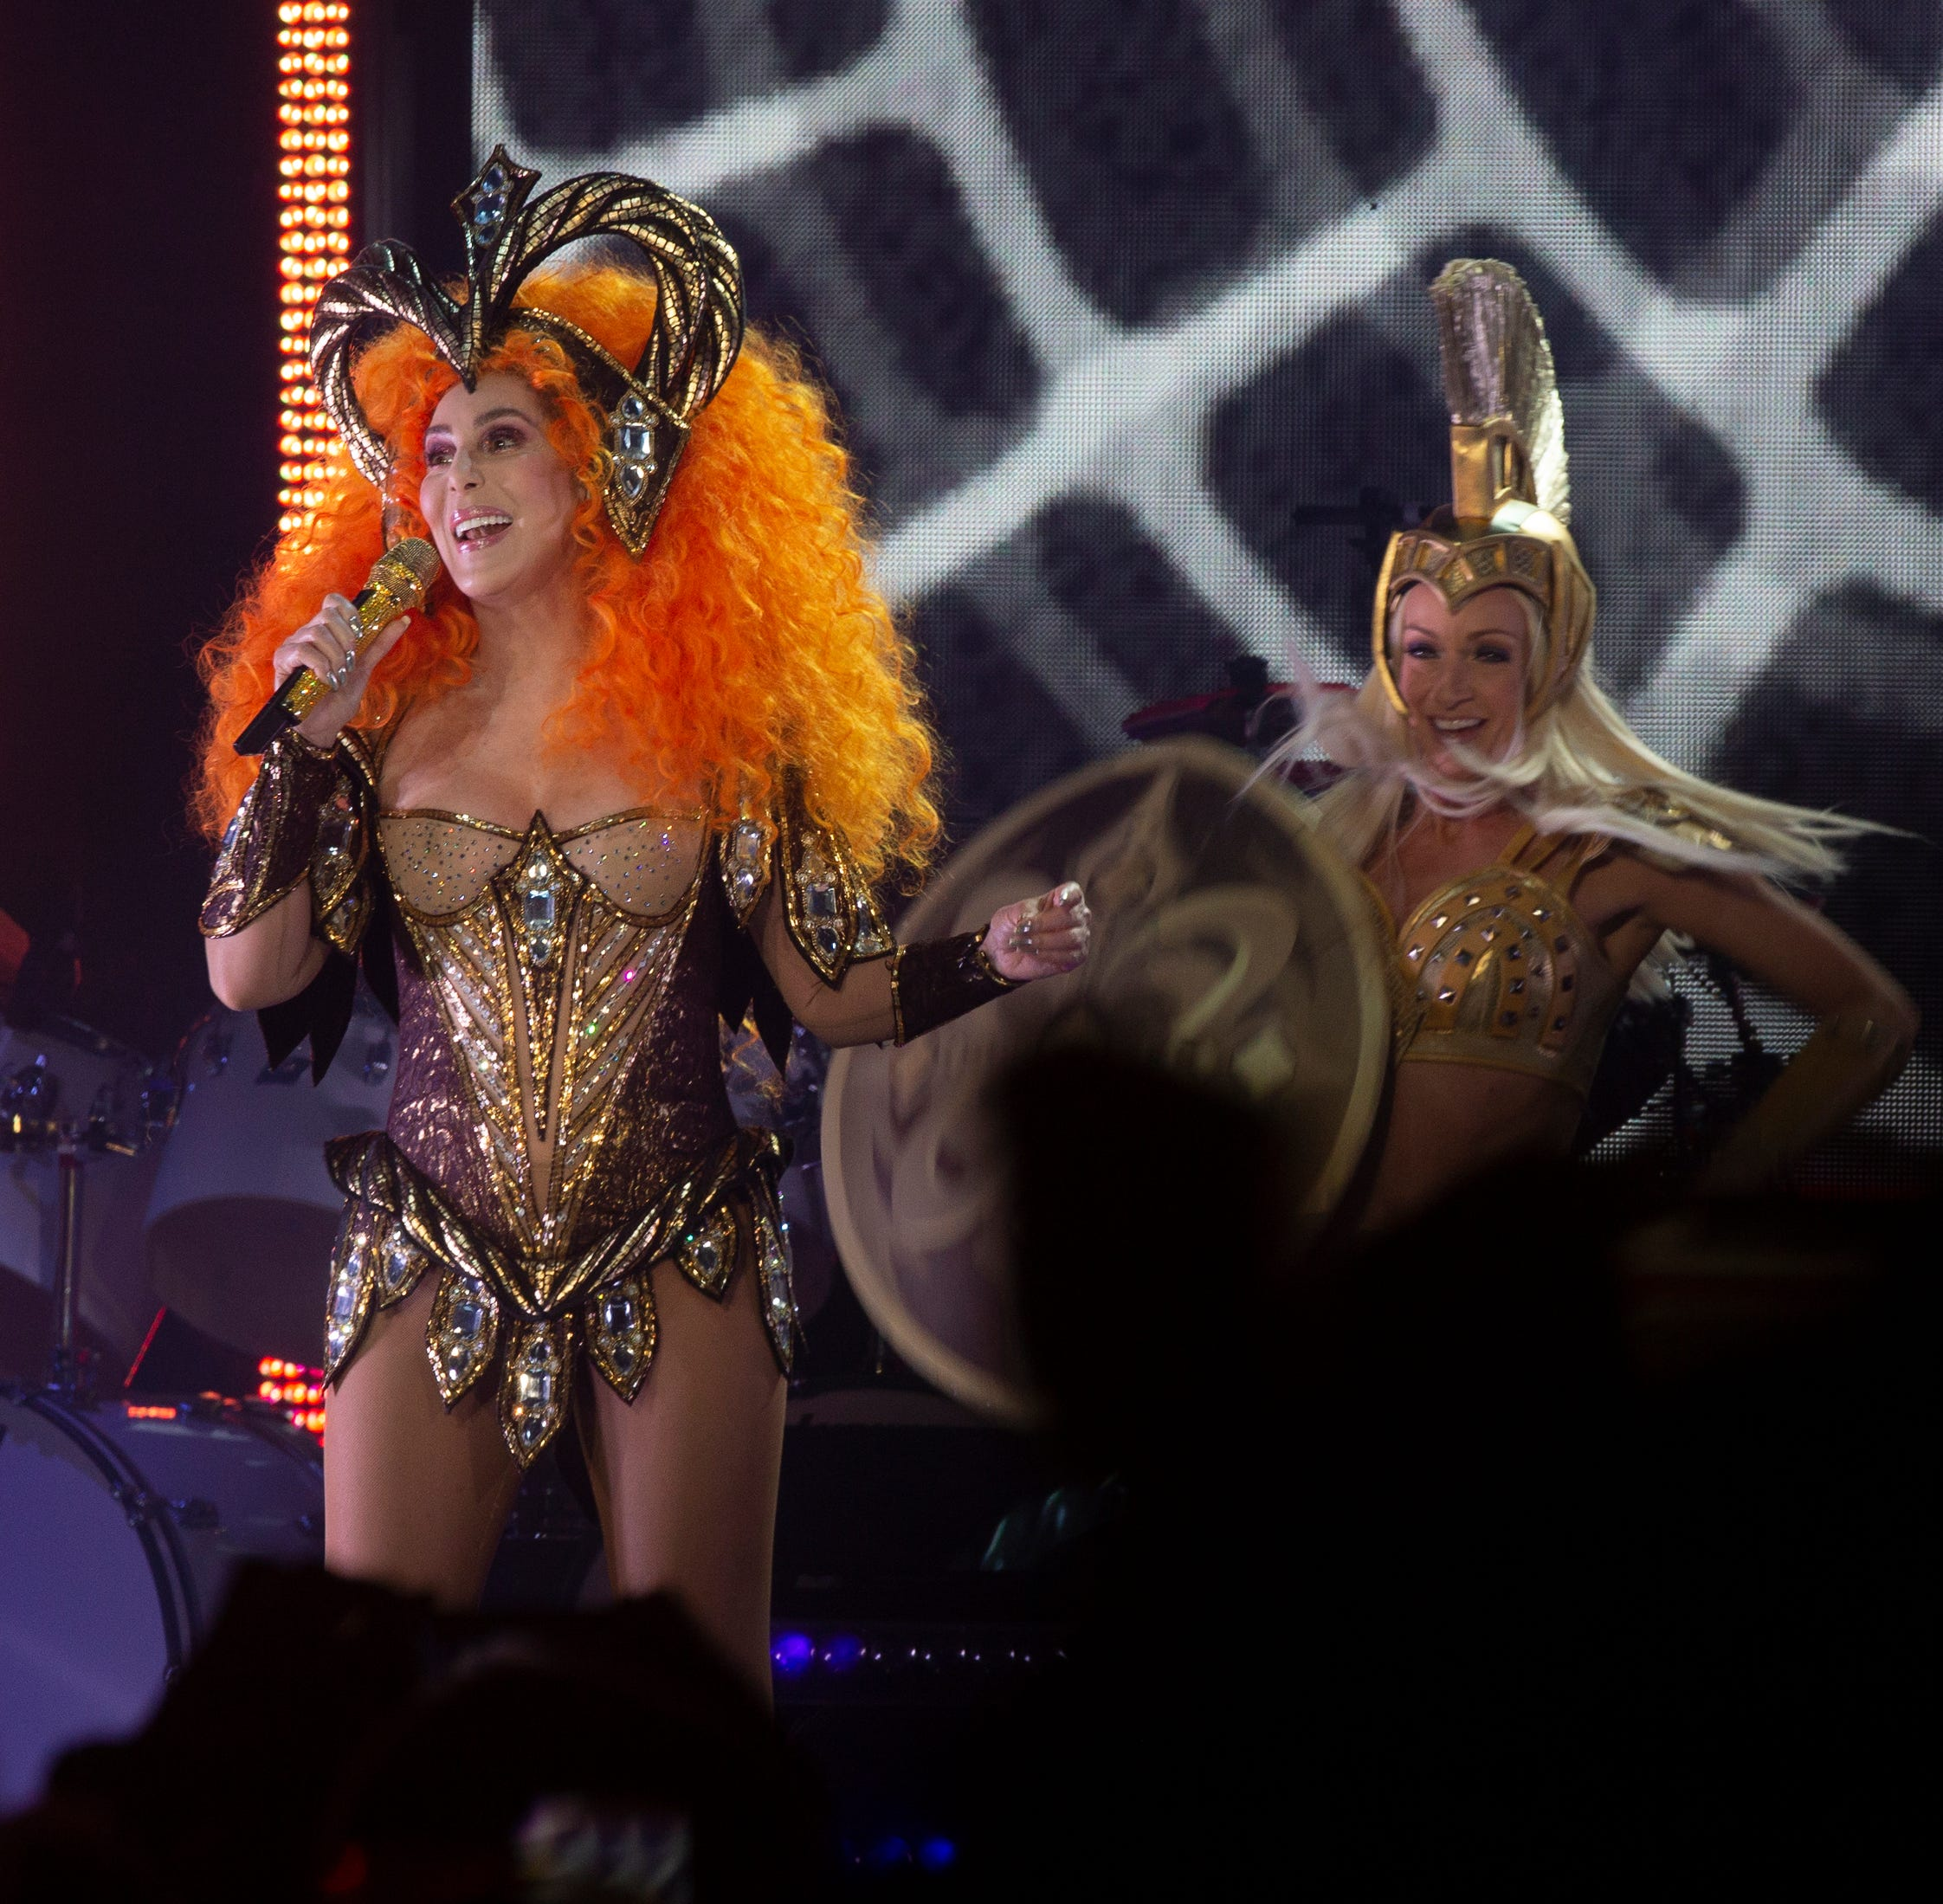 Cher delivers high-color show at Hertz Arena, making her audience easily 'Believe'